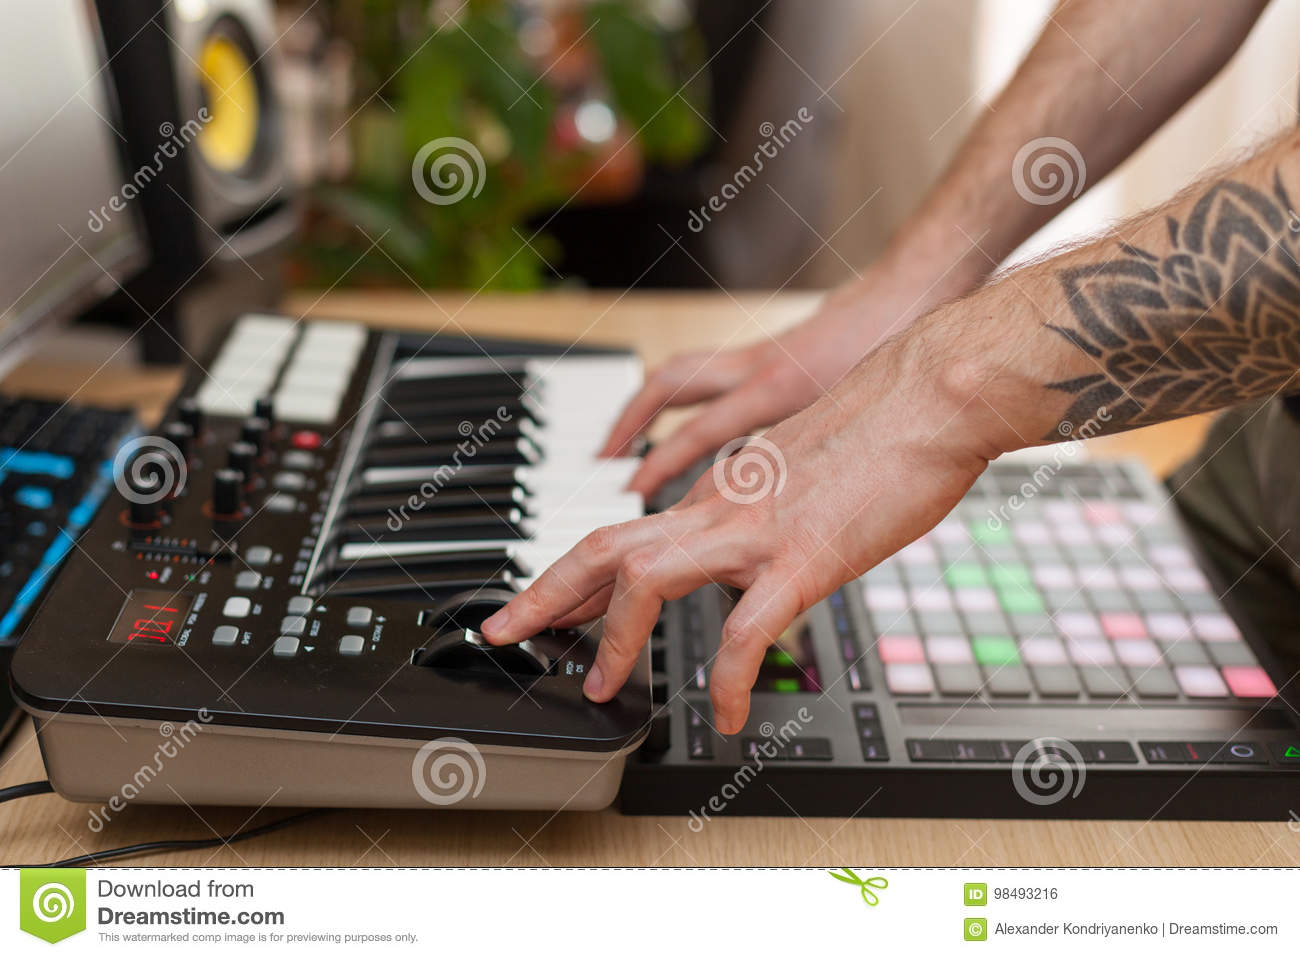 Producer makes a music on MIDI keyboard.